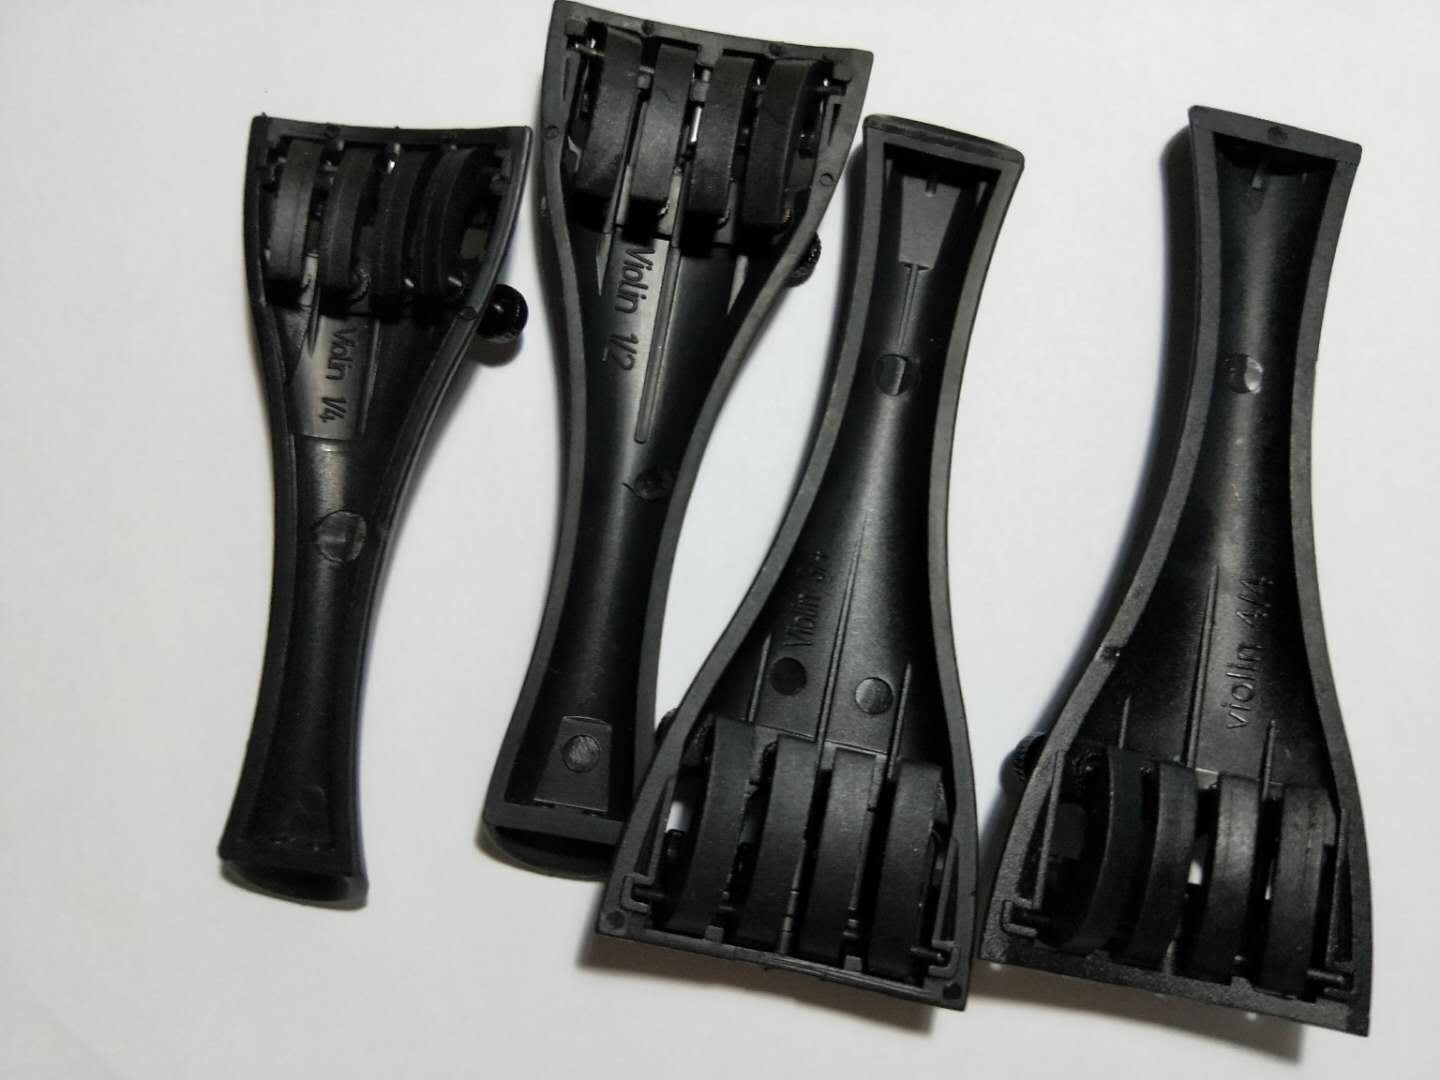 40 PCs Quality Carbon Fiber Violin Tail Piece with String Adjusters  Fiddle Parts 10pcs Each Size From 1/4 1/2 3/4 To 4/4 4 4 5 string new violin neck man head hand carve high quality 1 2